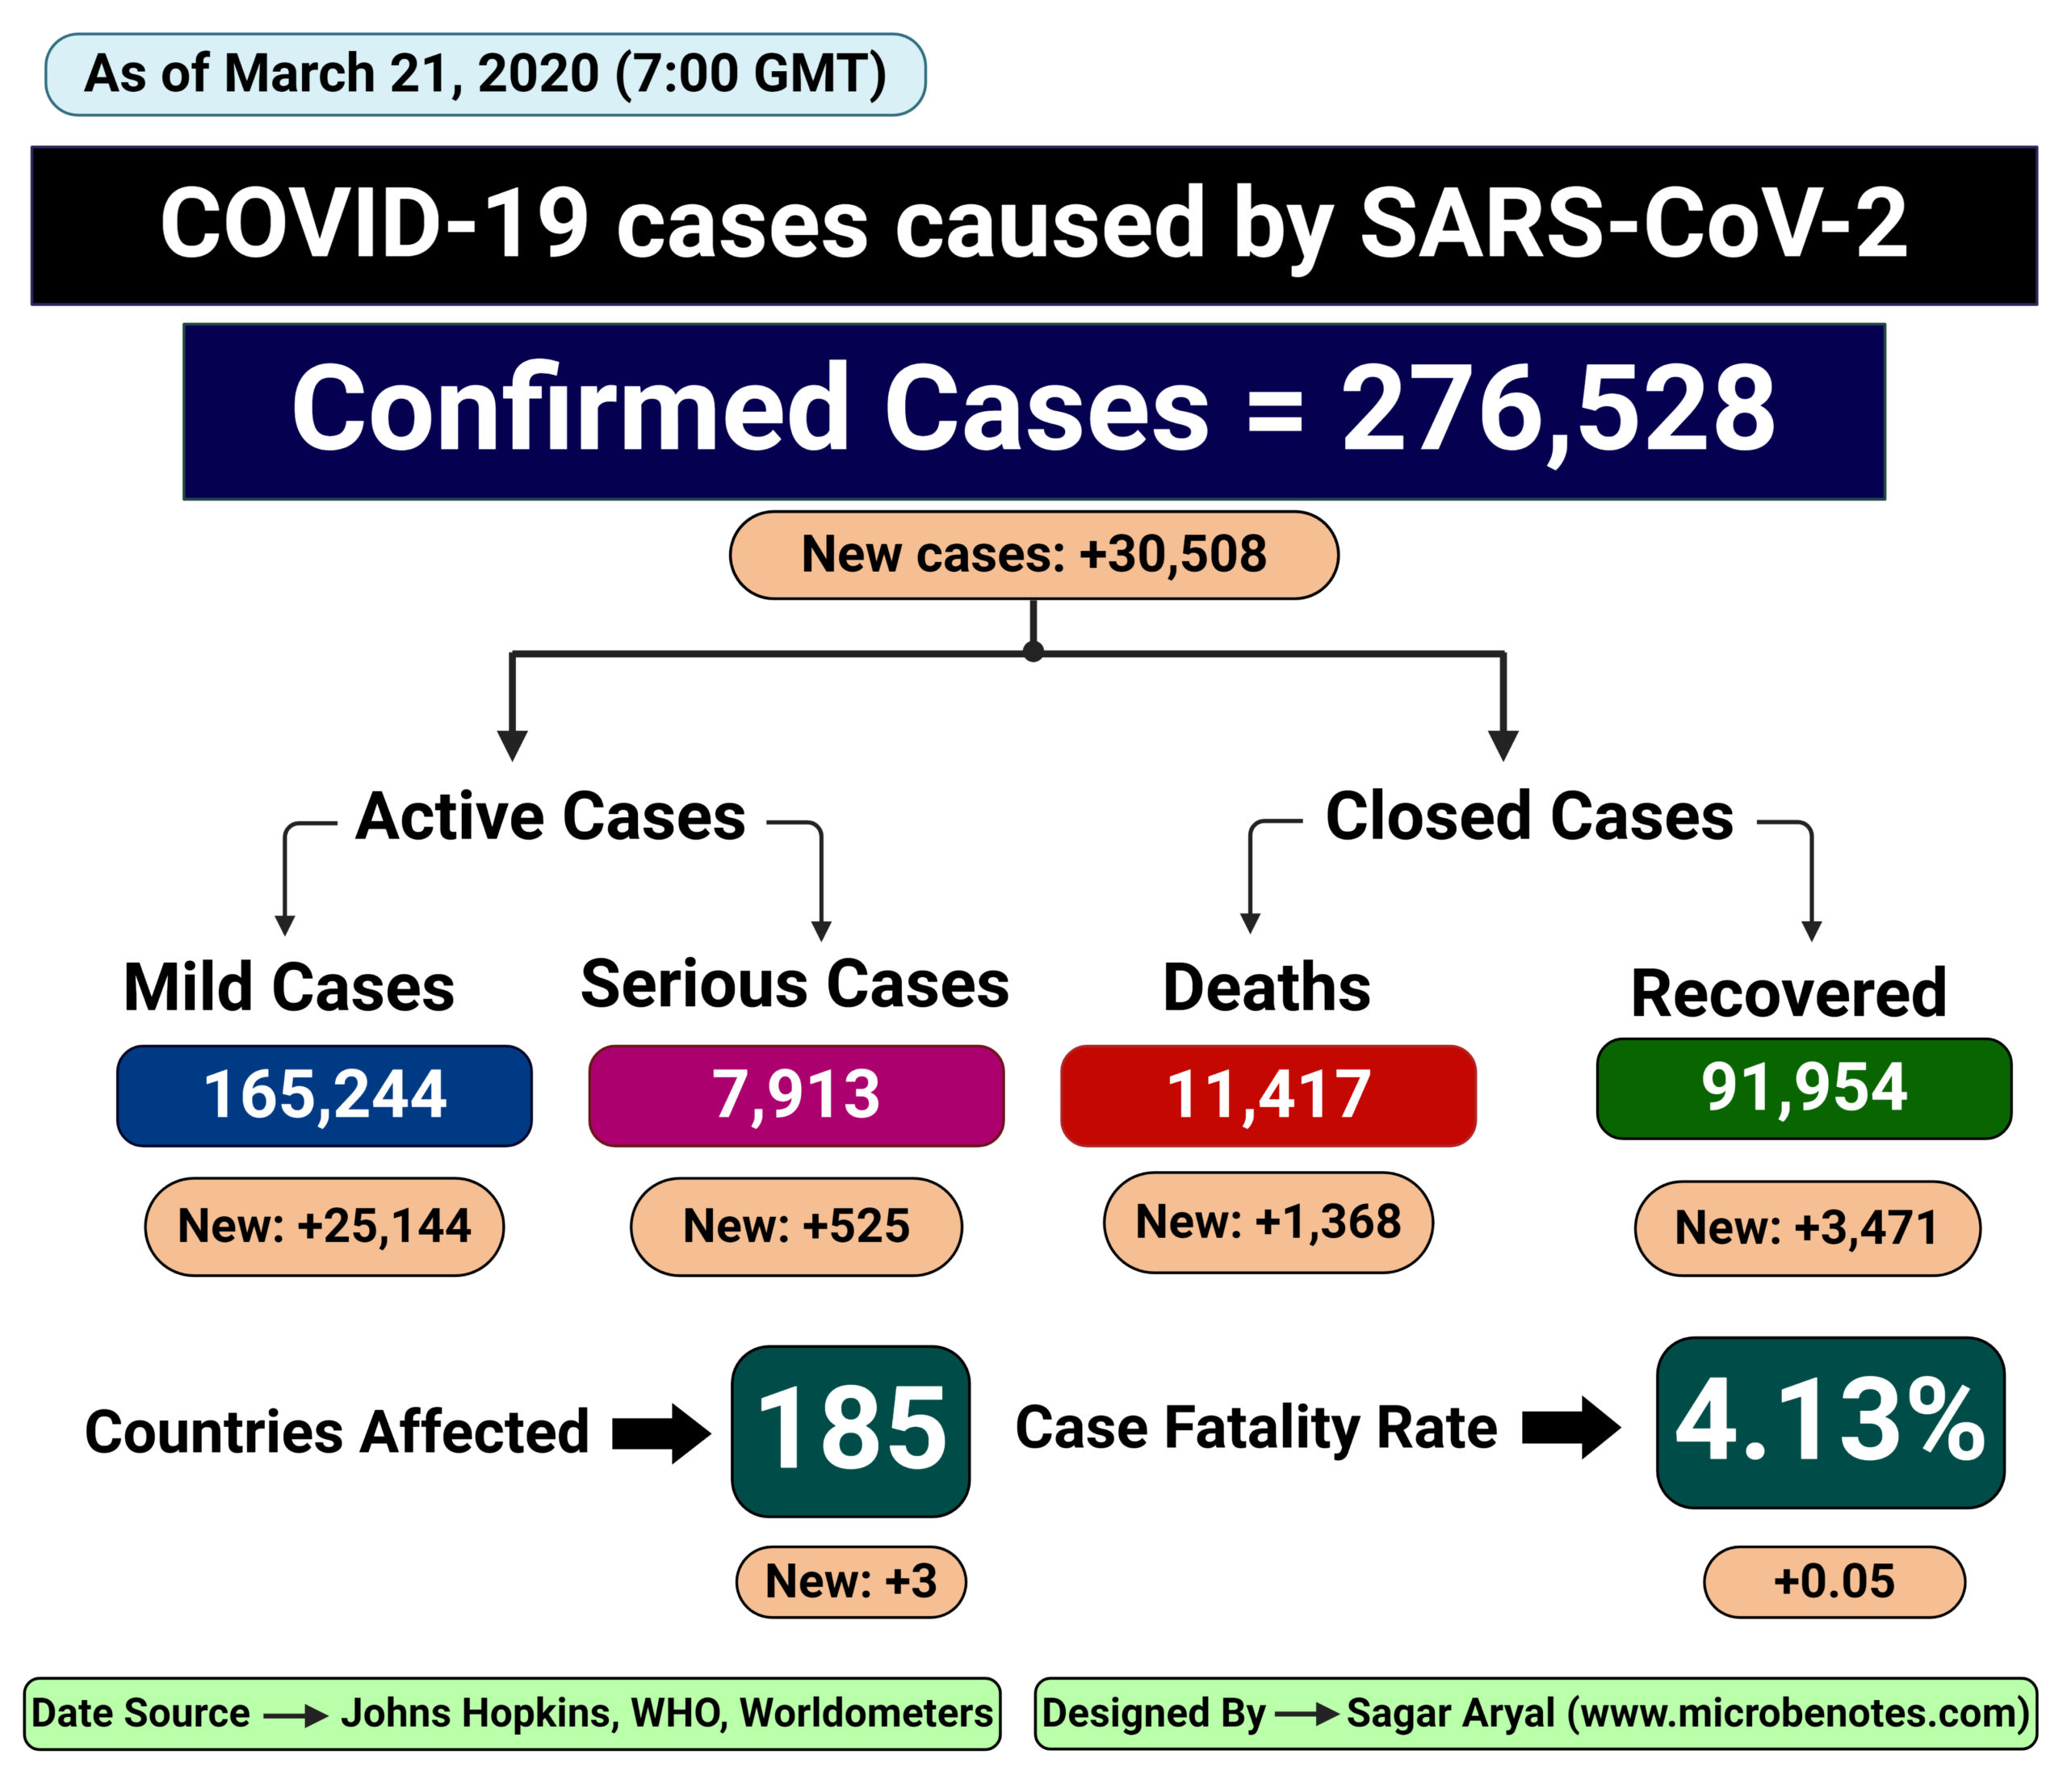 Epidemiology of COVID-19 caused by SARS-CoV-2 as of March 21, 2020